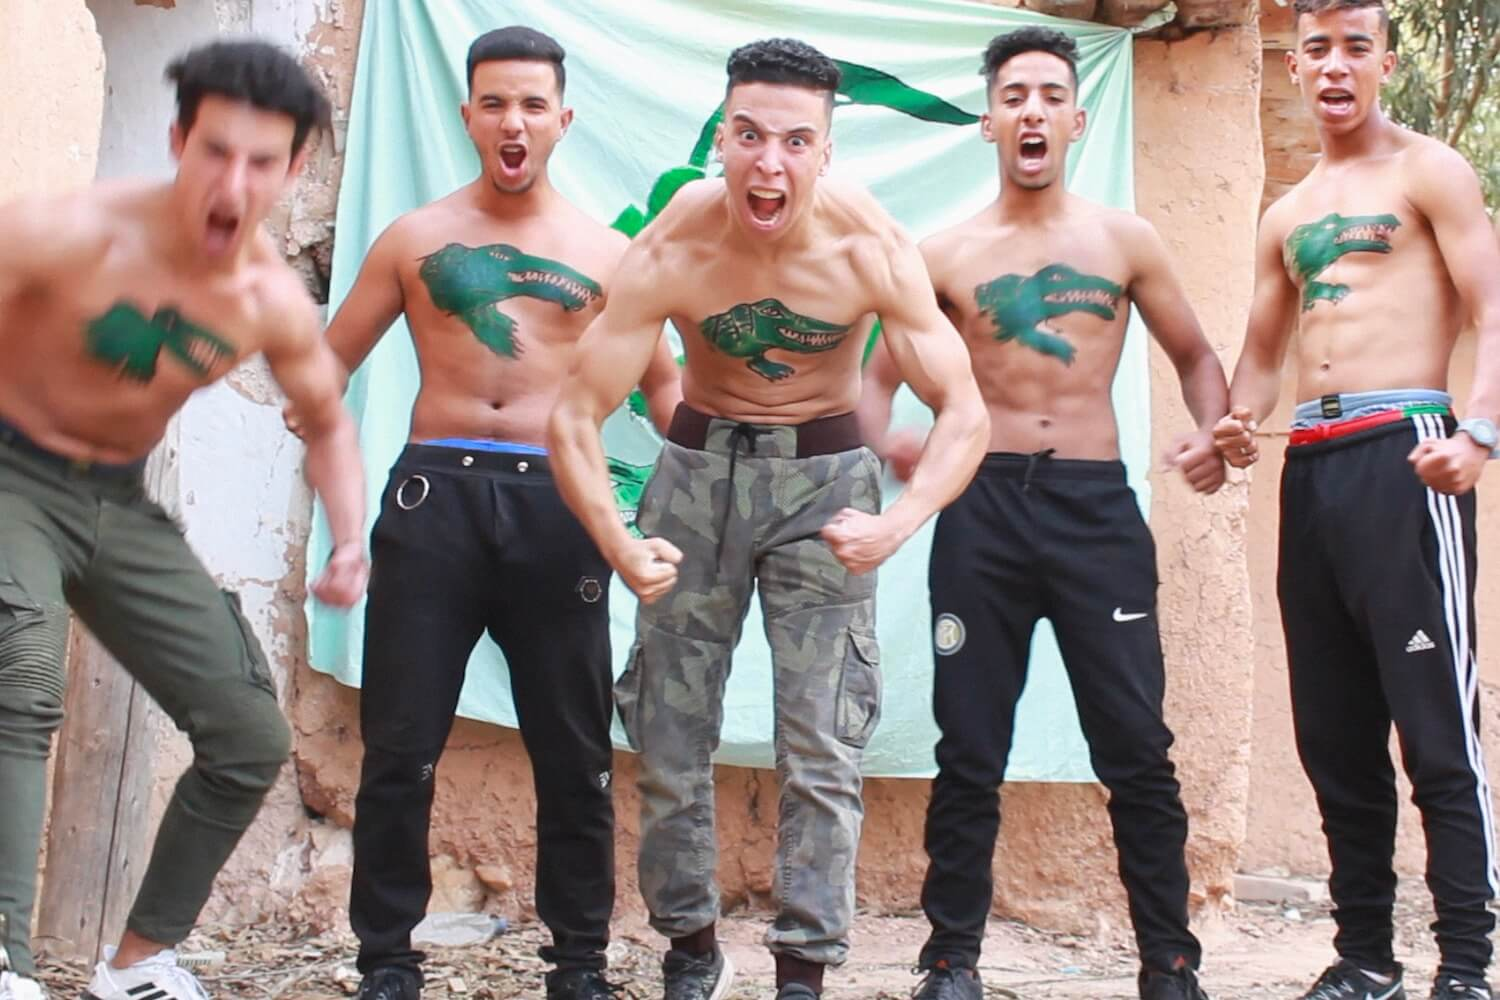 A group of shirtless Moroccan men with crocodiles painted on their chests flex and yell at the camera